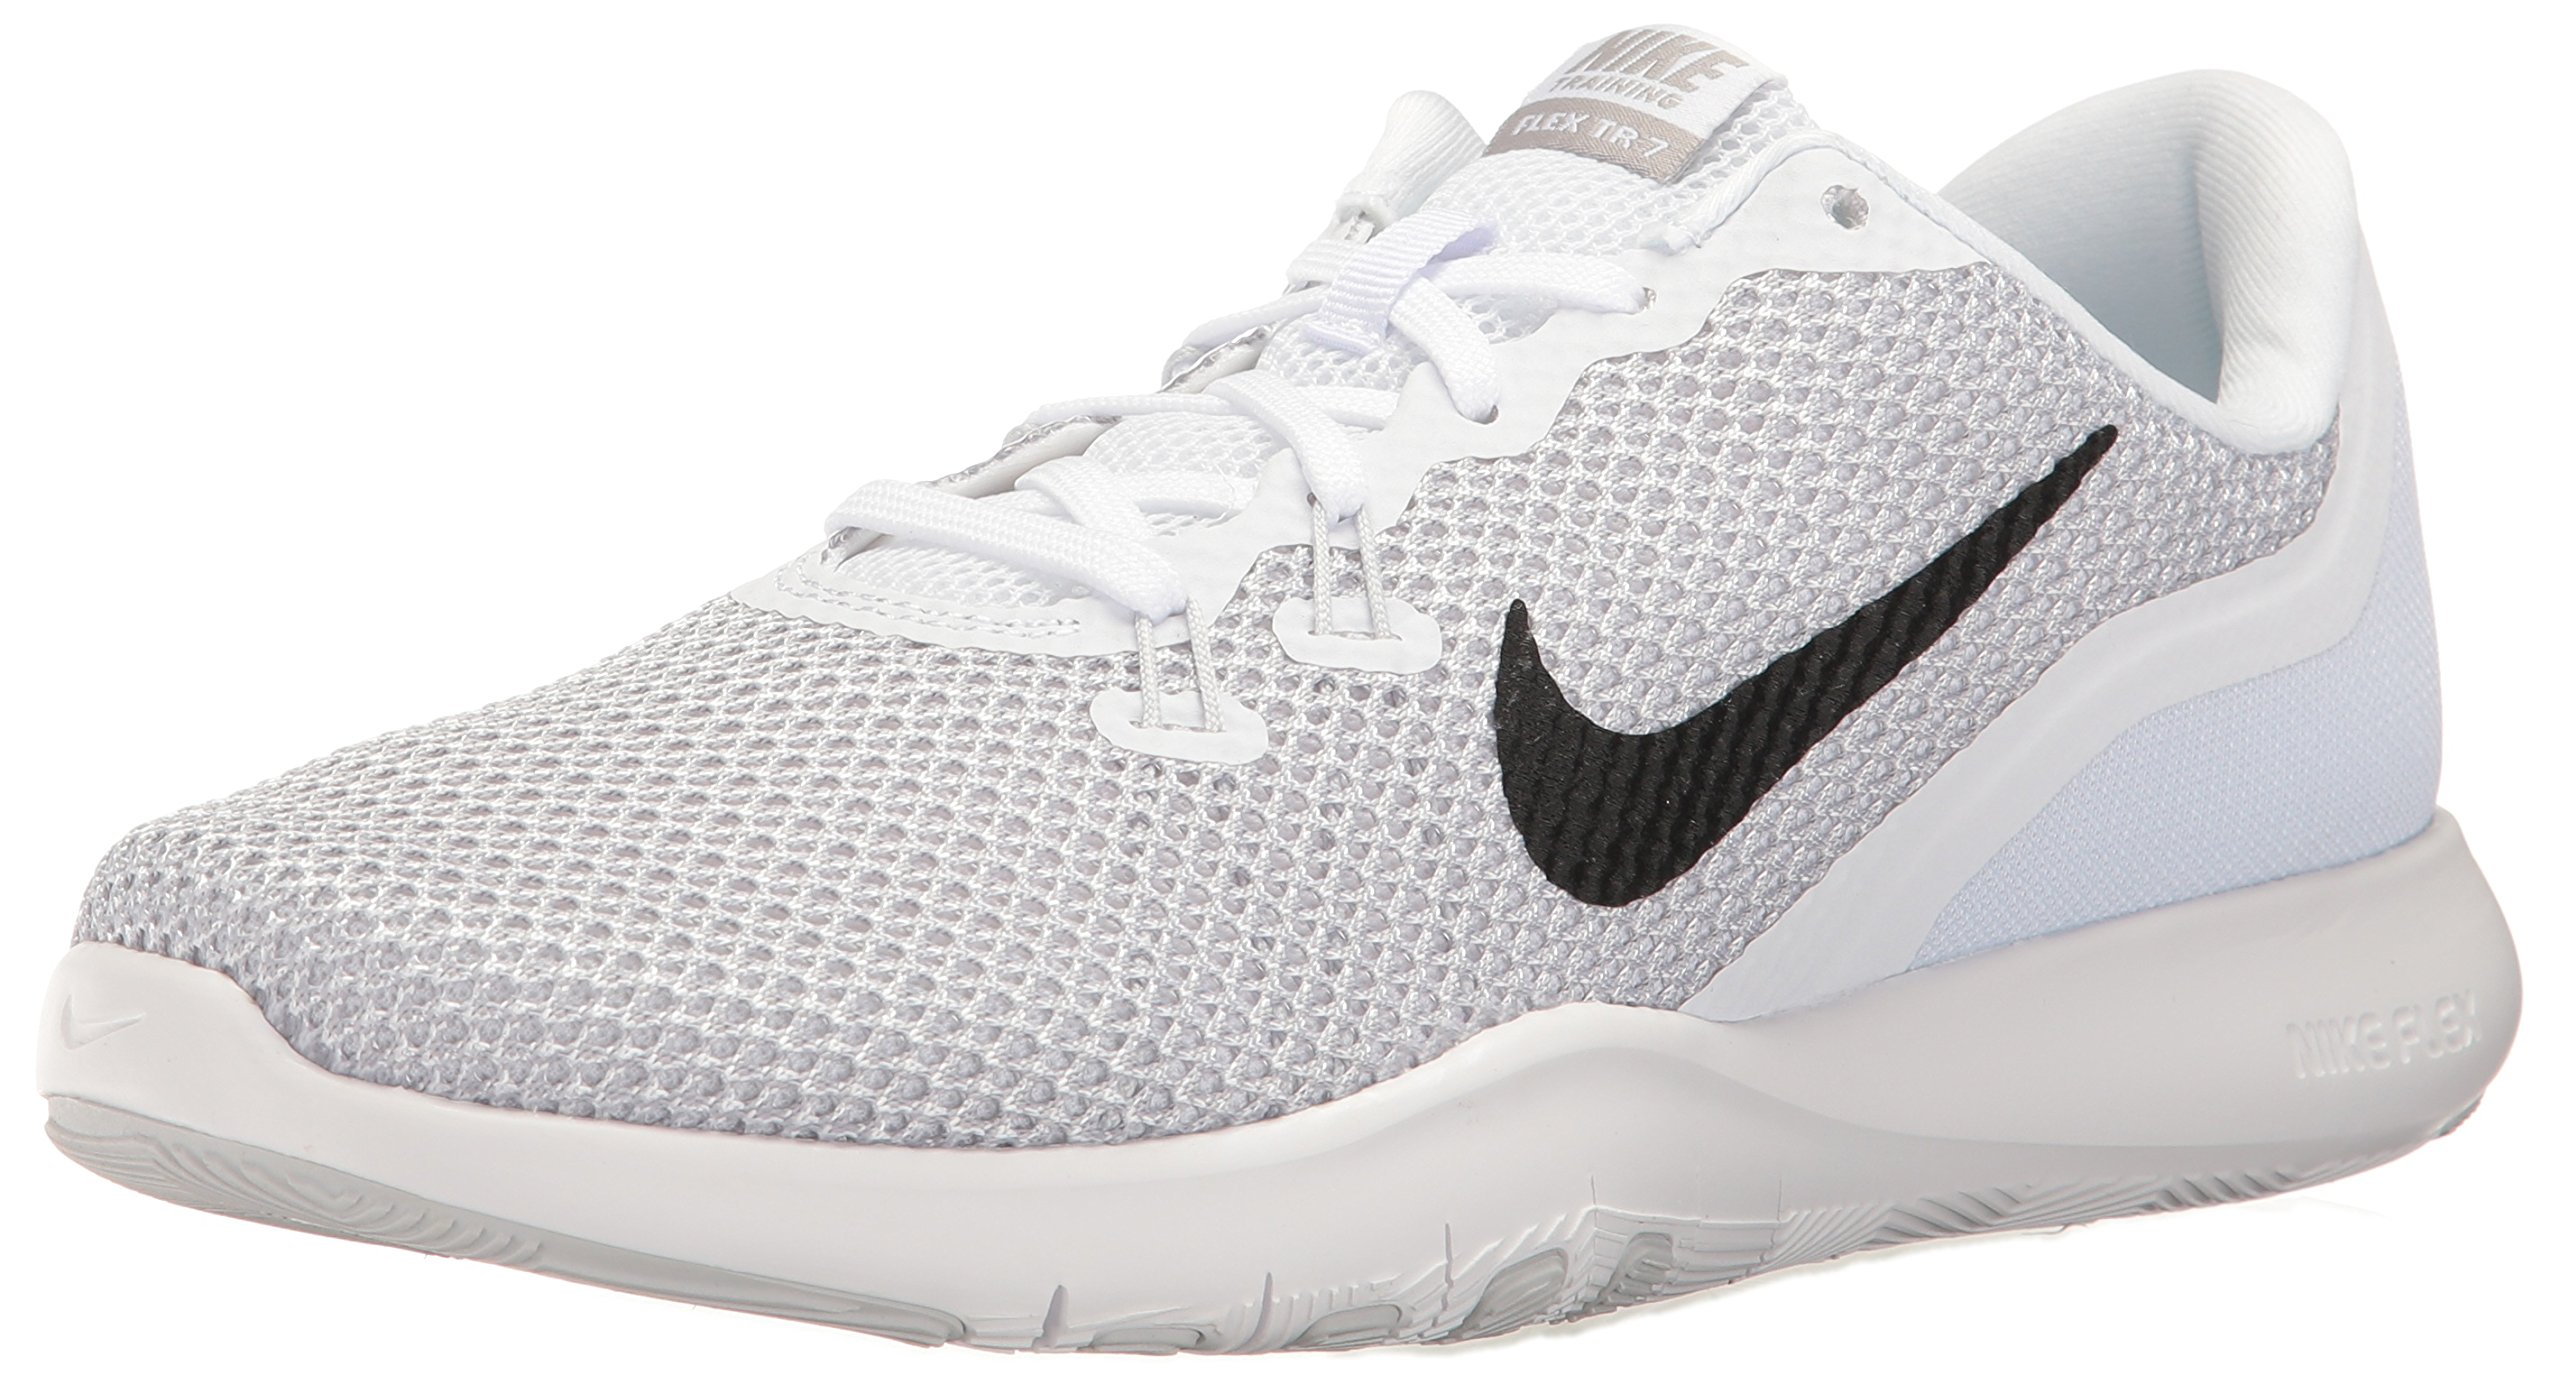 24c7bc38b782d Galleon - Nike Women s Flex Trainer 7 Cross